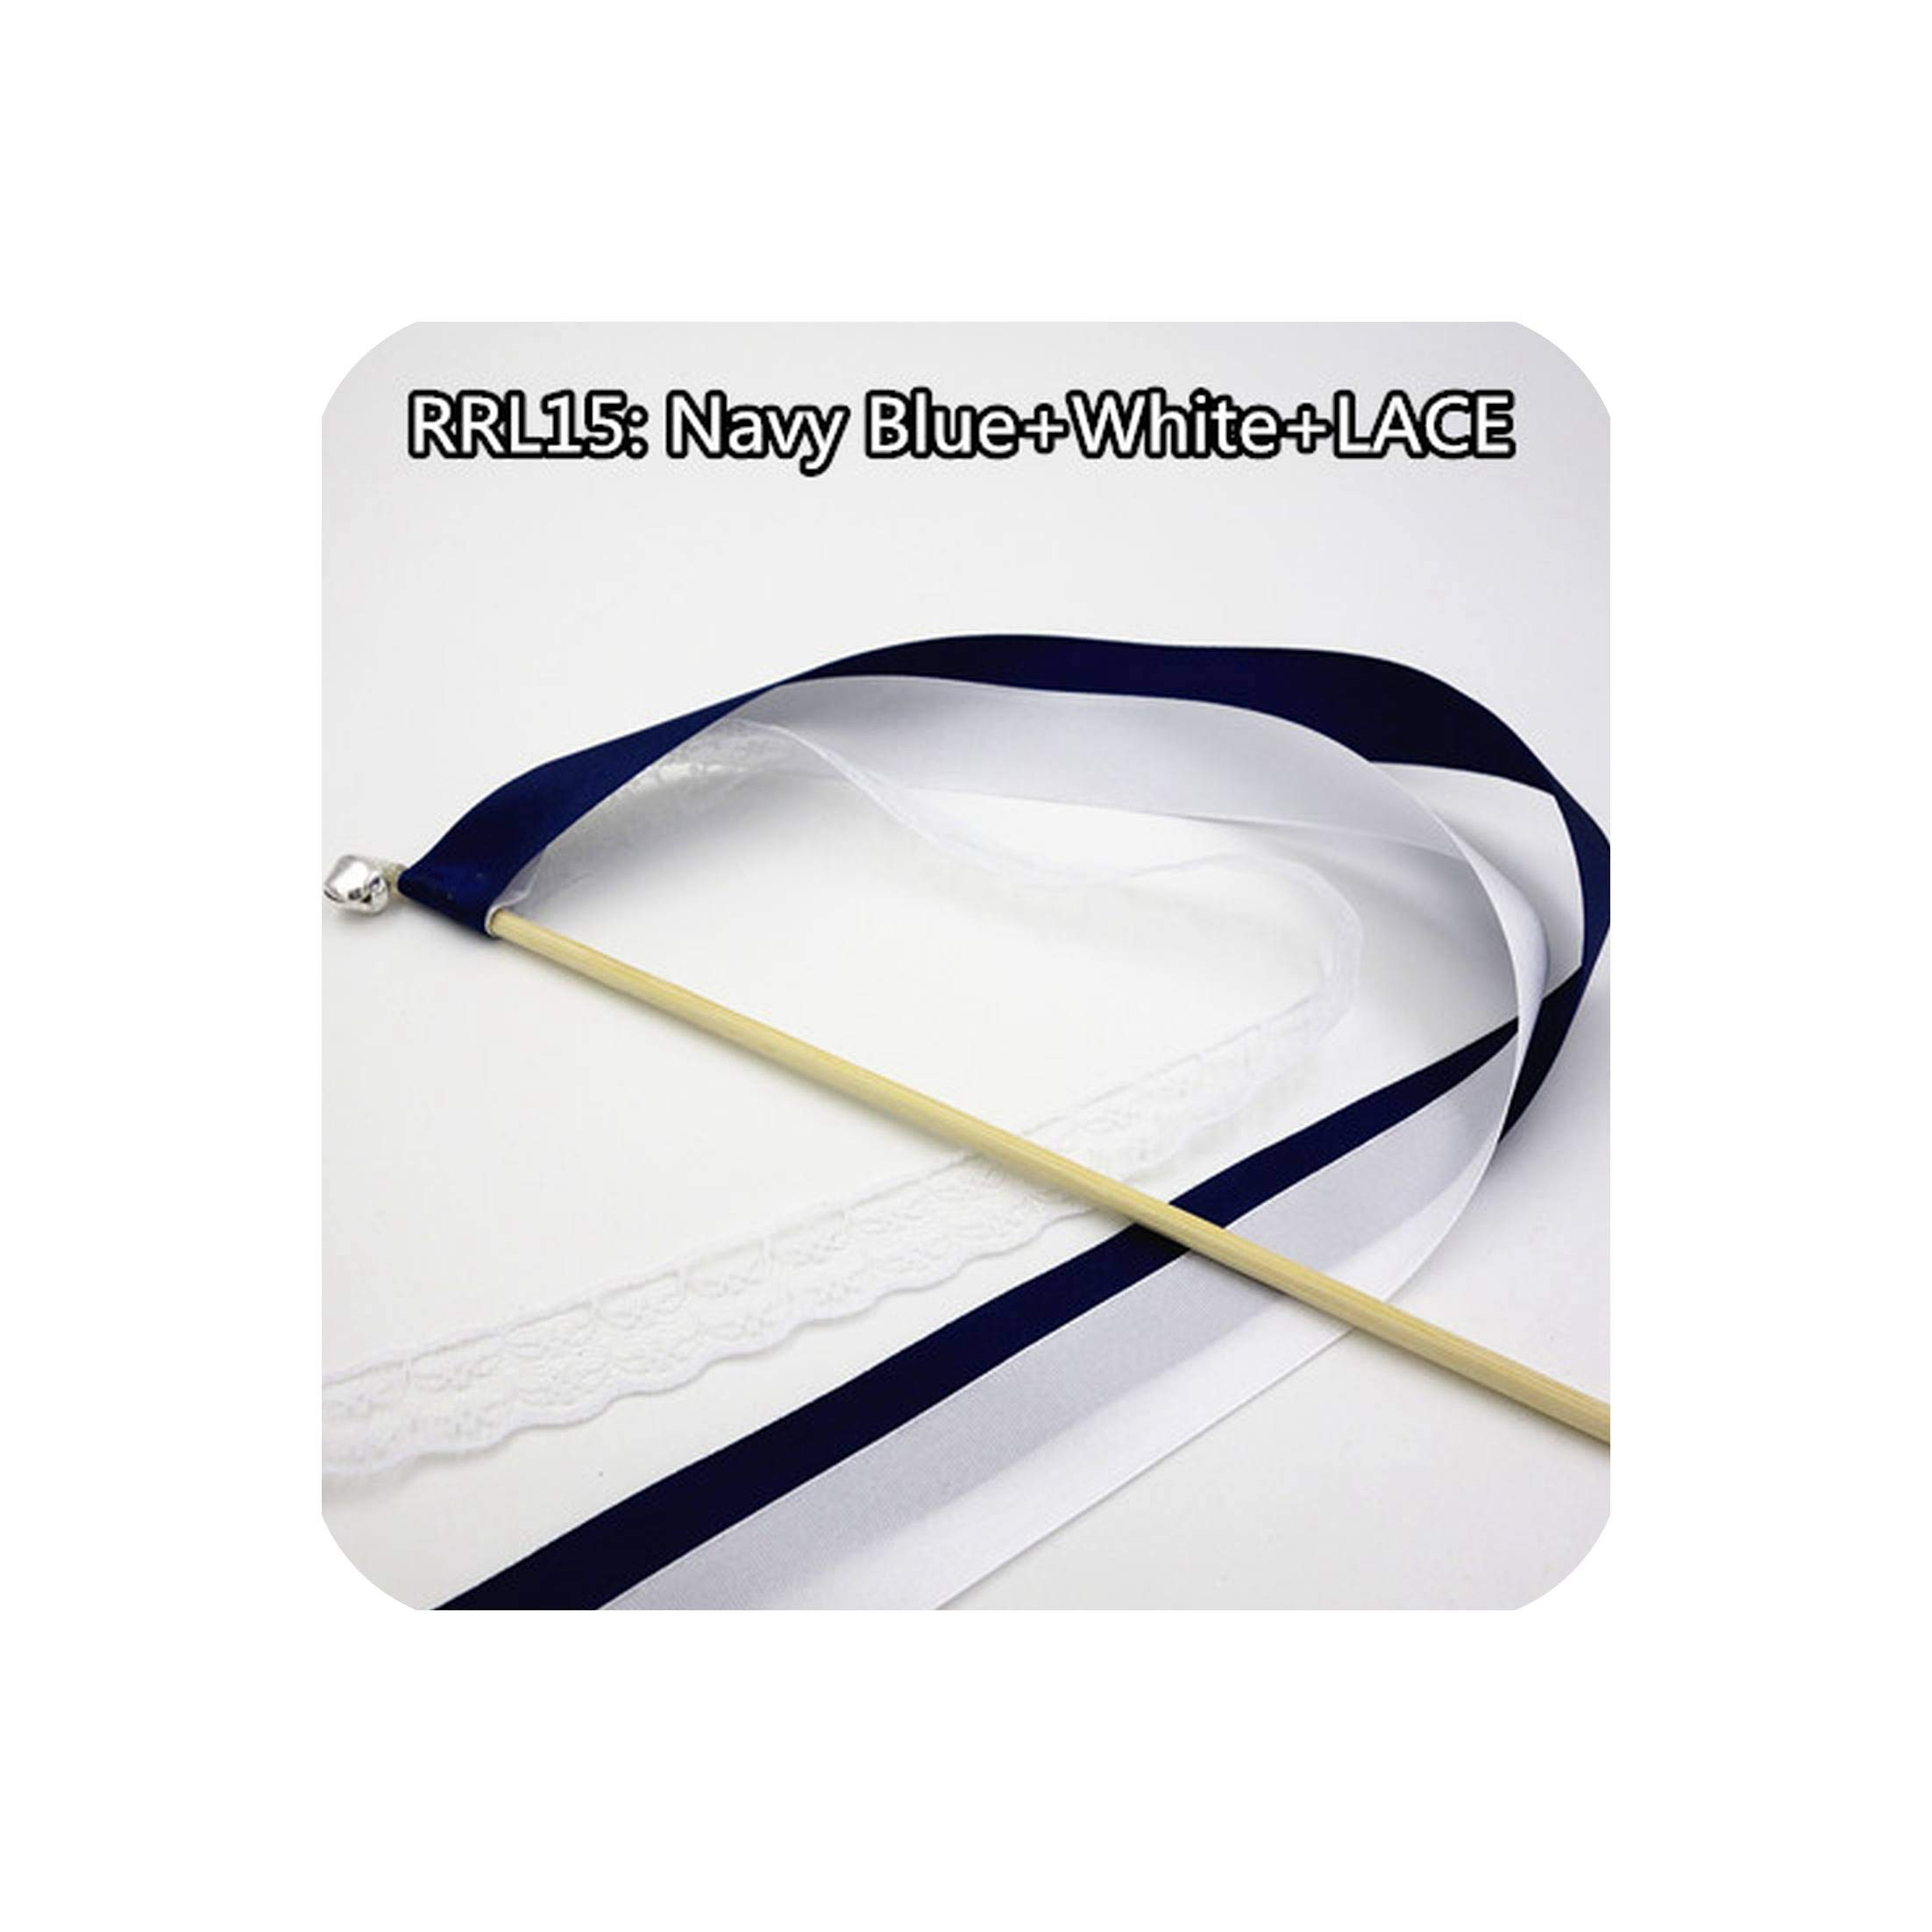 50Pcs Ribbon And Lace Wands Twirling Streamers Wedding Ribbon Stick Streamers Stick With Bell Send Off Bell Wands,Rrl15,White Lace